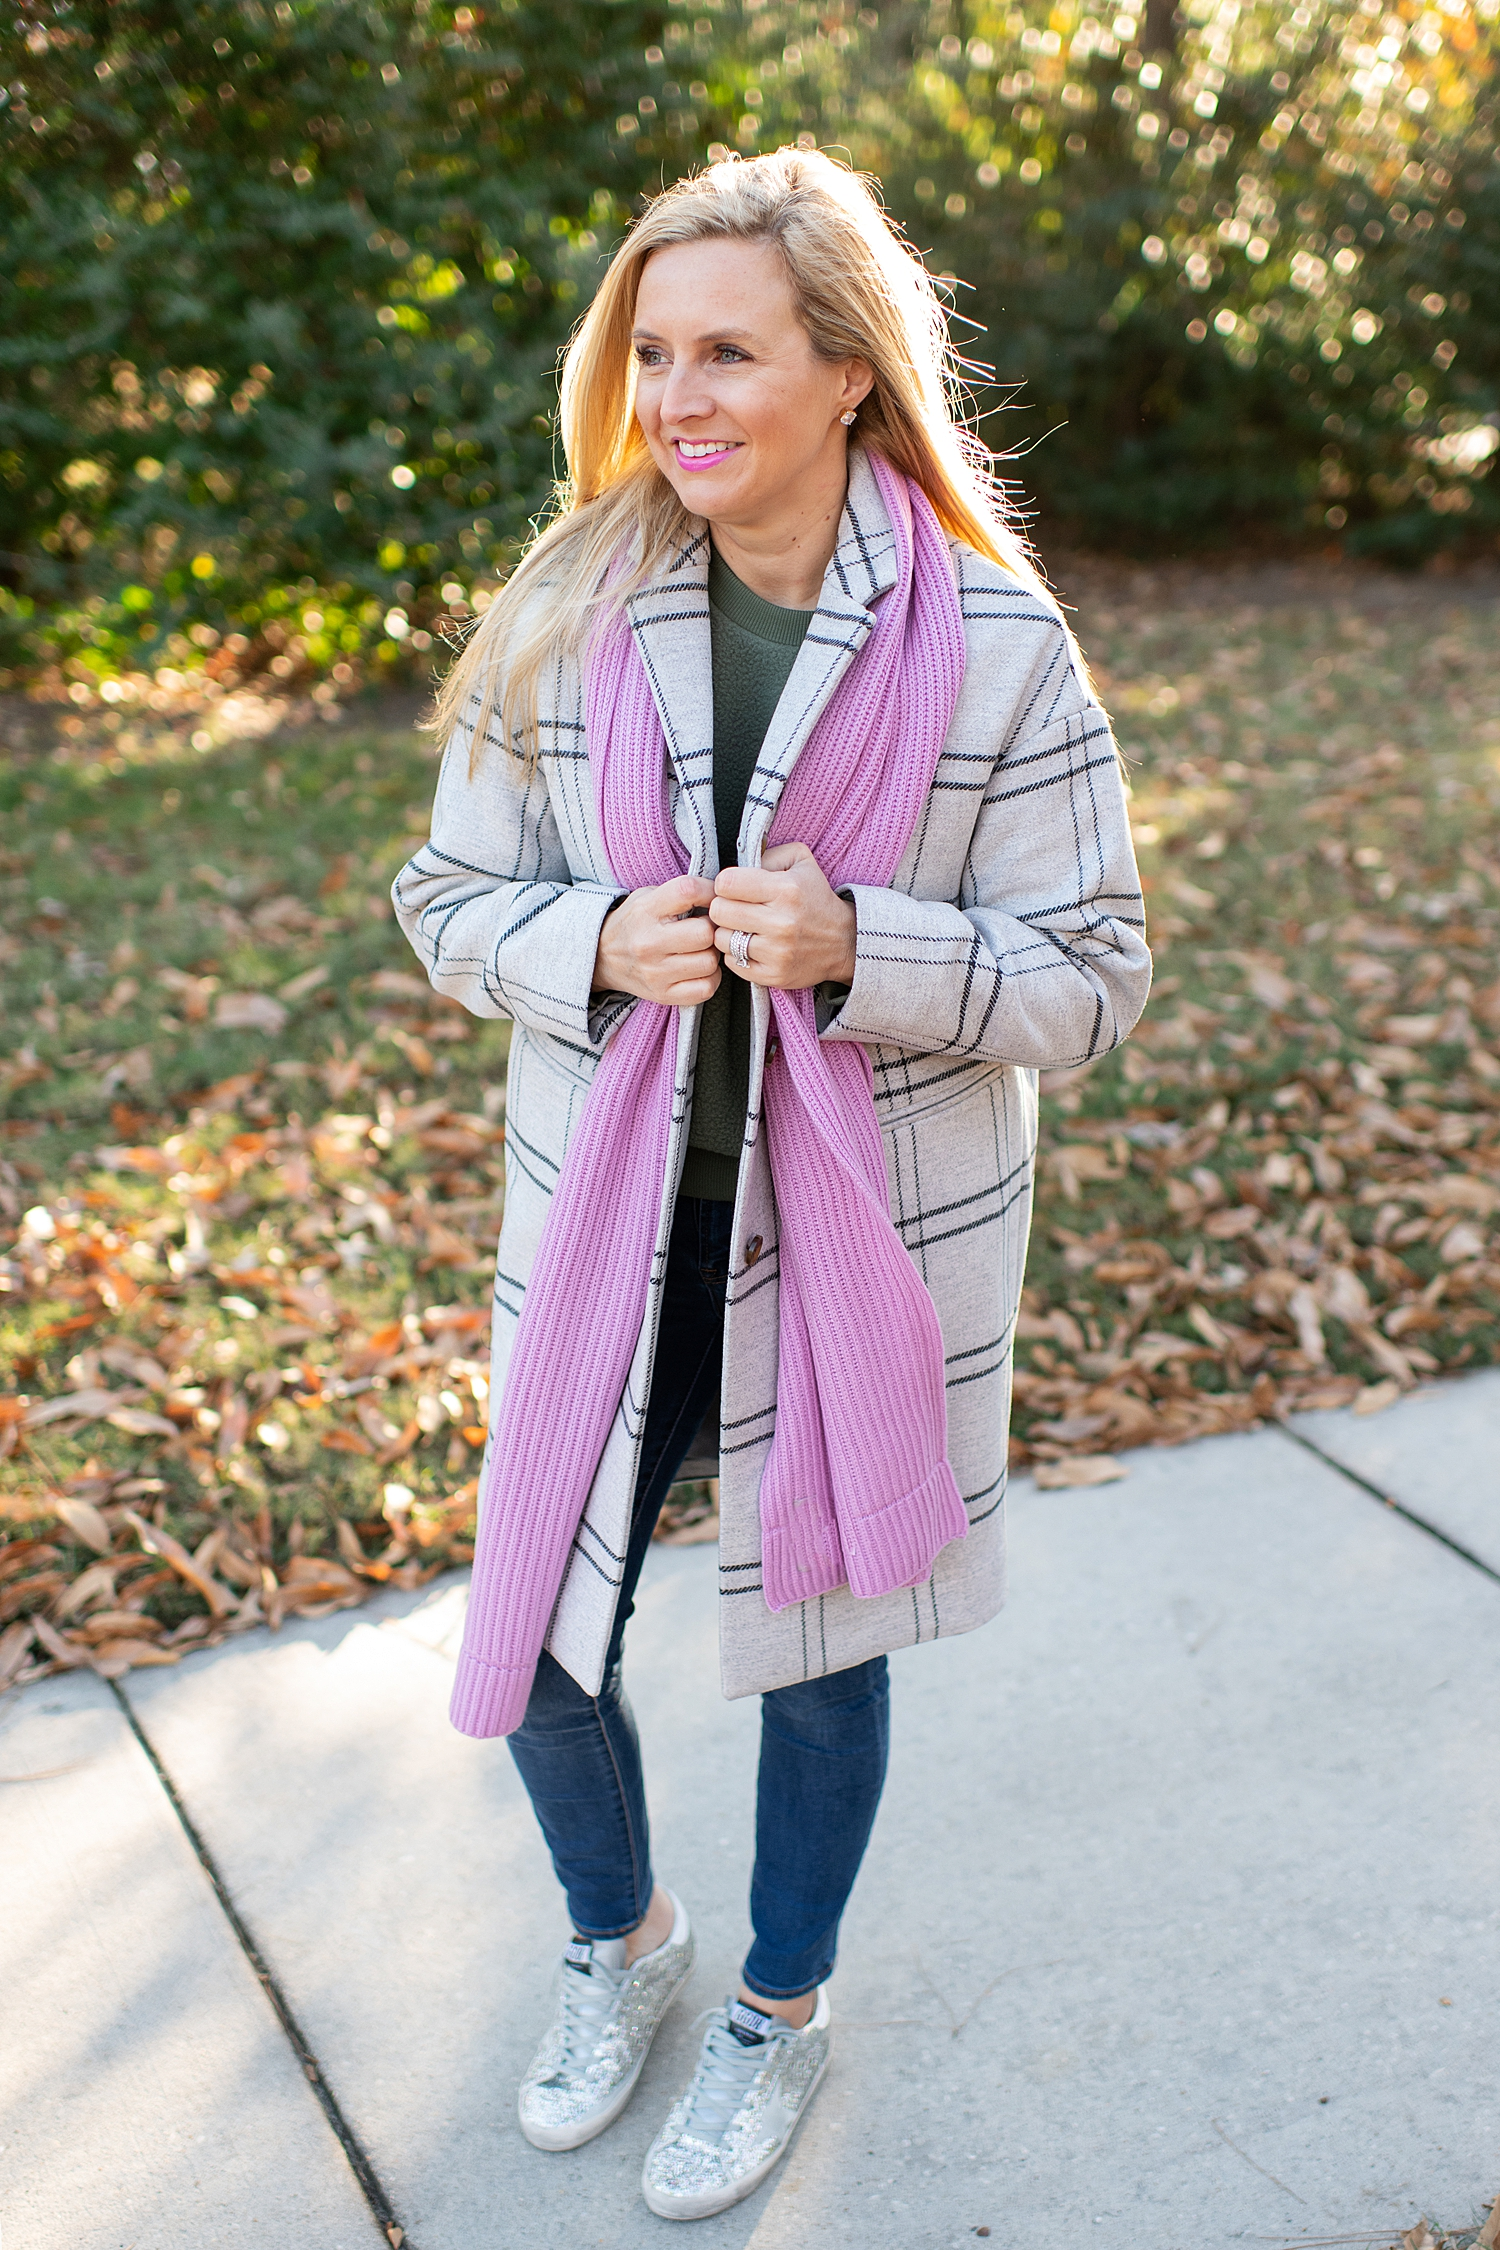 The Best Cozy Gift Ideas featured by top Houston fashion blogger, Fancy Ashley: picture of a blonde woman wearing an Everlane green cocoon coat, an Everlane cashmere scarf, an Everyone cashmere beanie, green Everlane fleece sweatshirt, J.Crew tartan shirt, J.Crew skinny jeans and Golden Goose sneakers